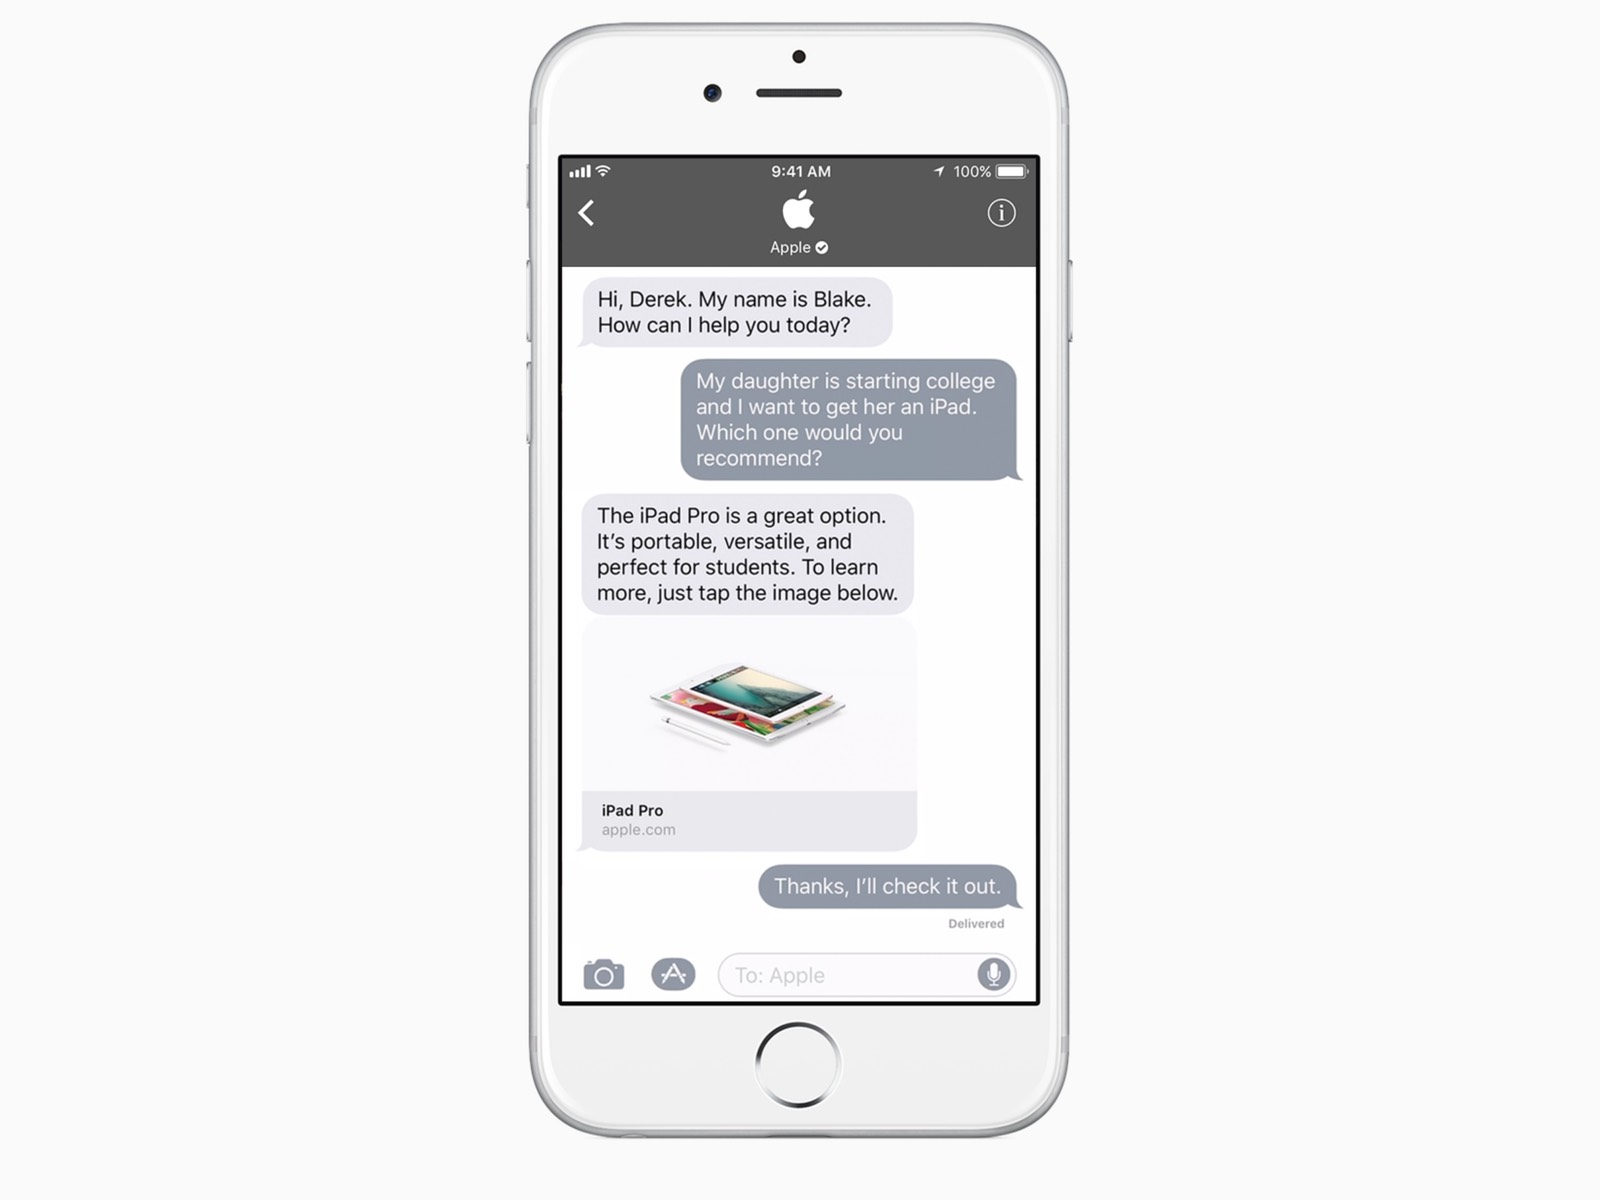 Screenshot of a customer interaction with Apple in iMessage as part of Business Chat.